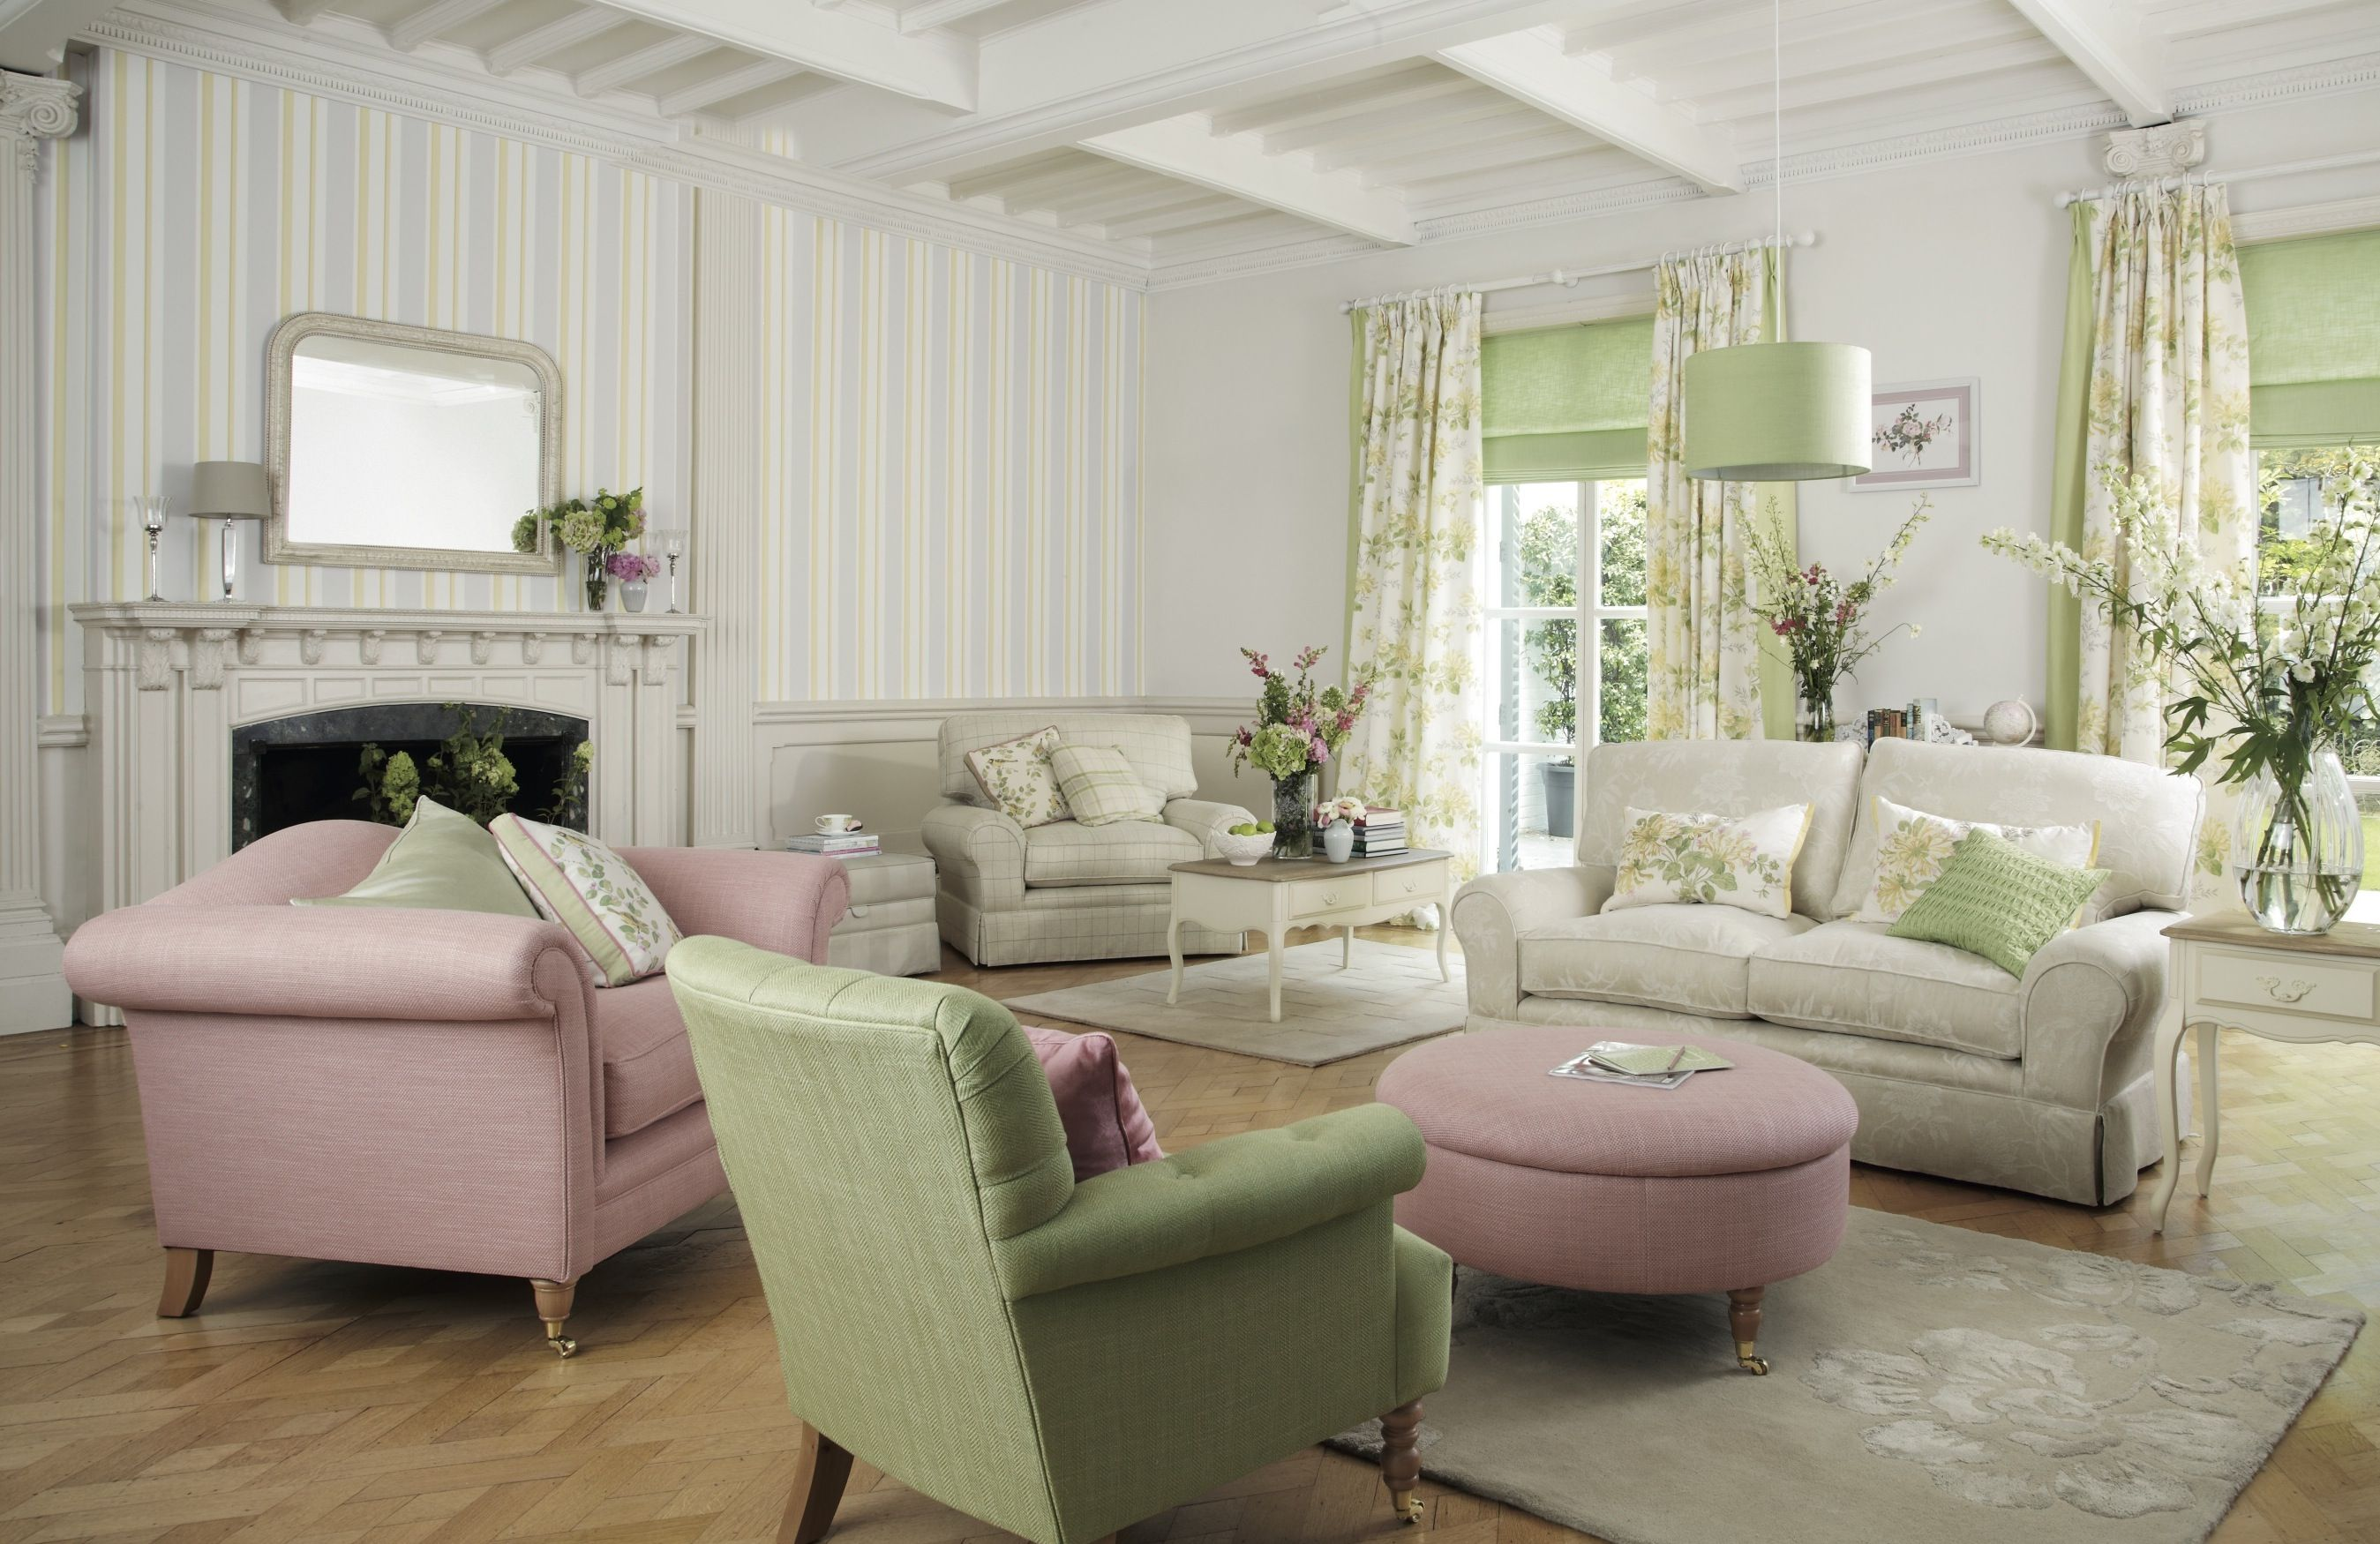 Best Adore This Look For The Front Room Honeysuckle Curtains With Apple Green Edge Apple Gree 400 x 300